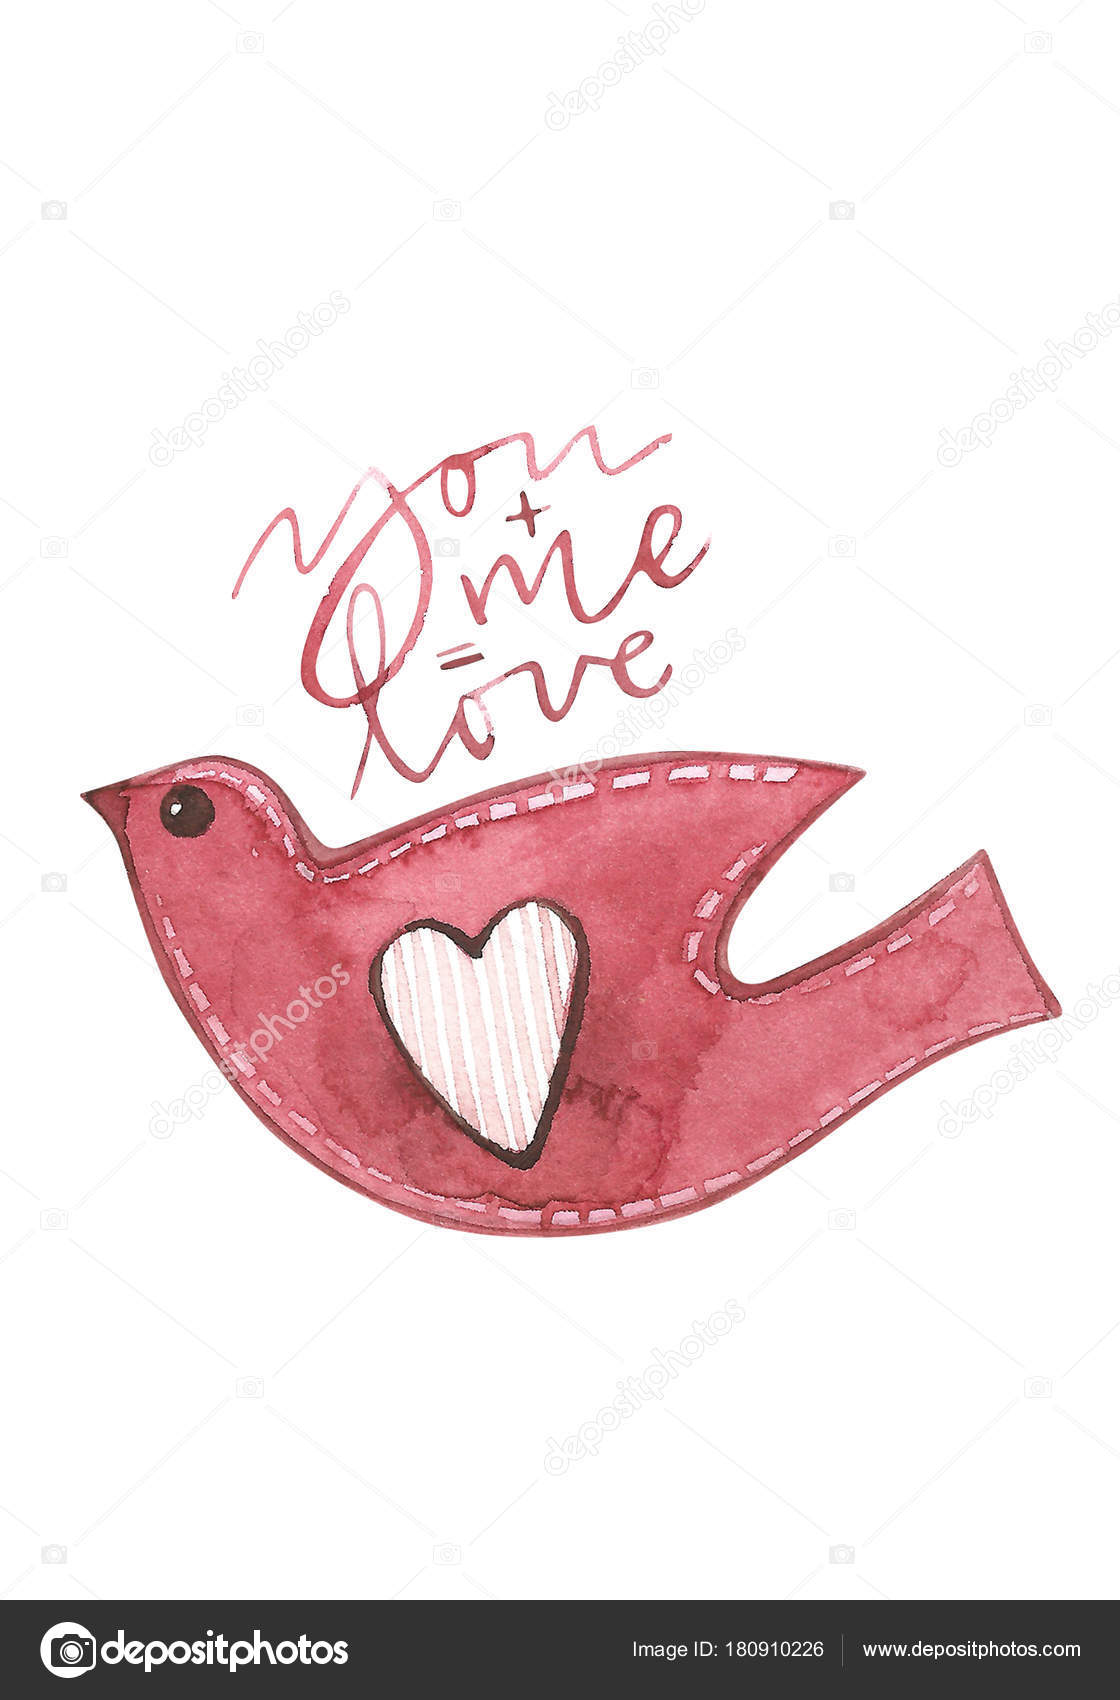 Valentines day cards with bird you and me are equal to love valentines day cards with bird you and me are equal to love romantic quote for design greeting cards tattoo m4hsunfo